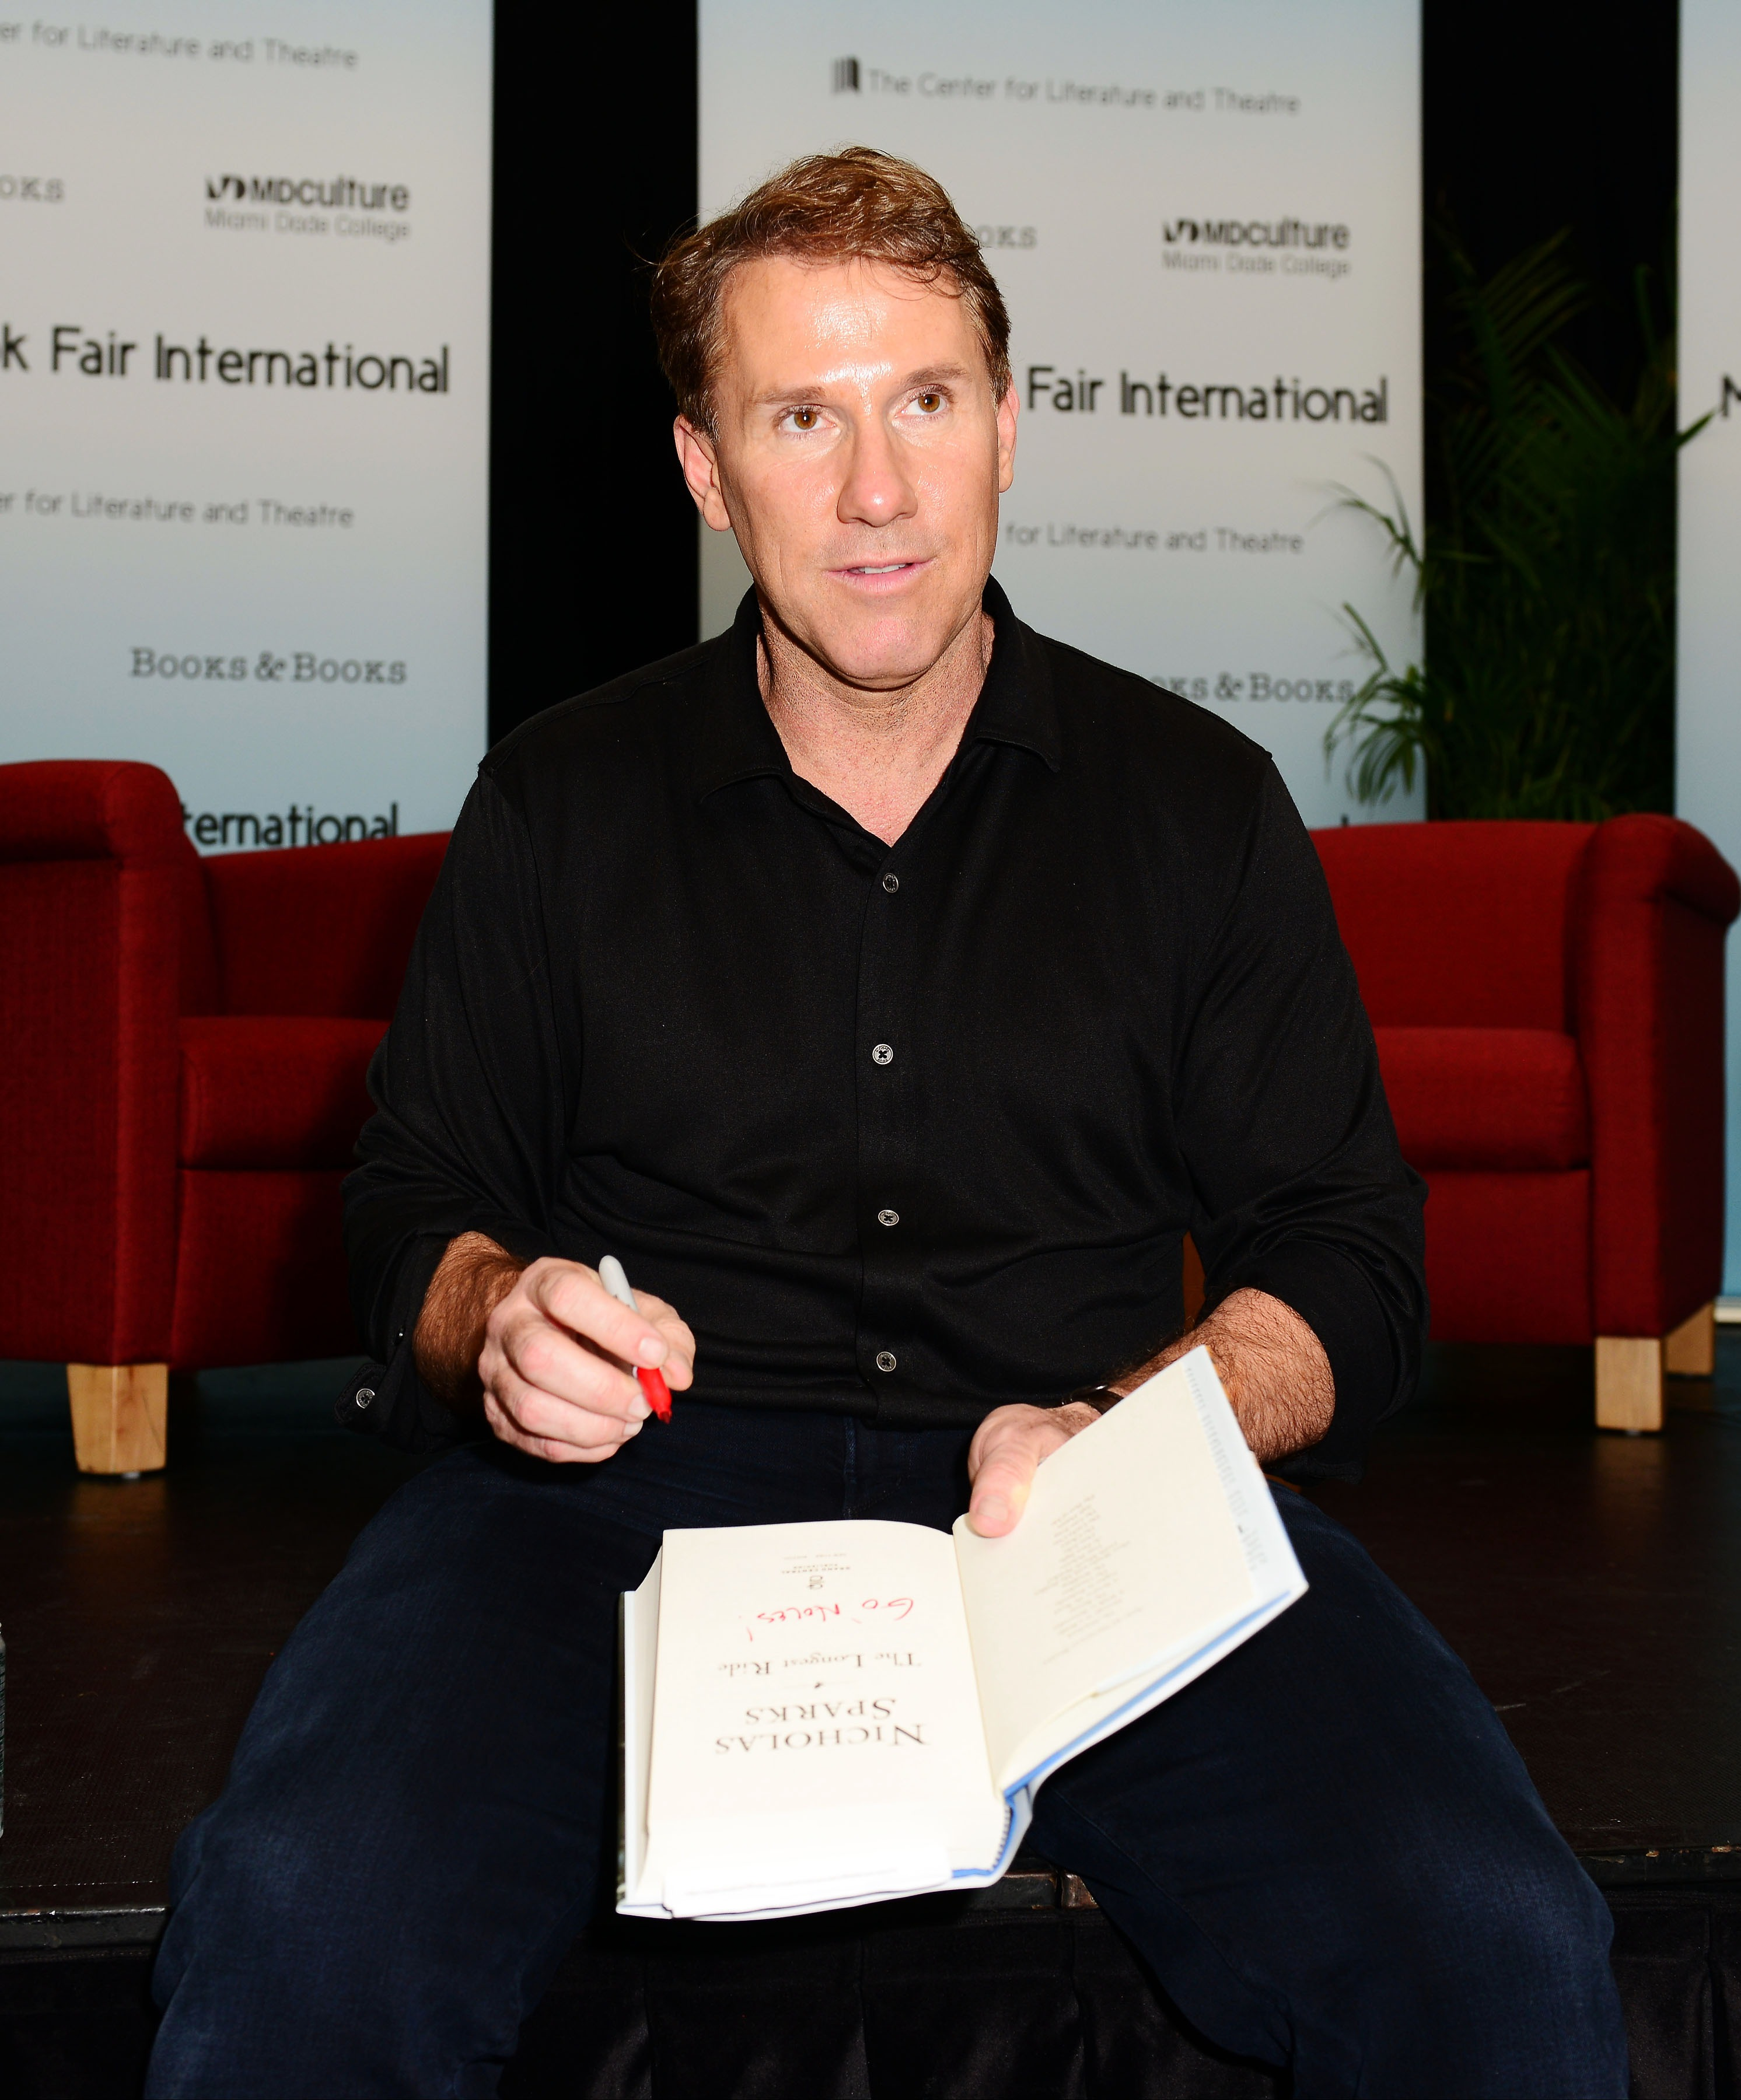 Author Nicholas Sparks discusses his book  The Longest Ride  presented by Books and Books at Chapman Conference Center at Miami Dade College on Sept. 30, 2013 in Miami.